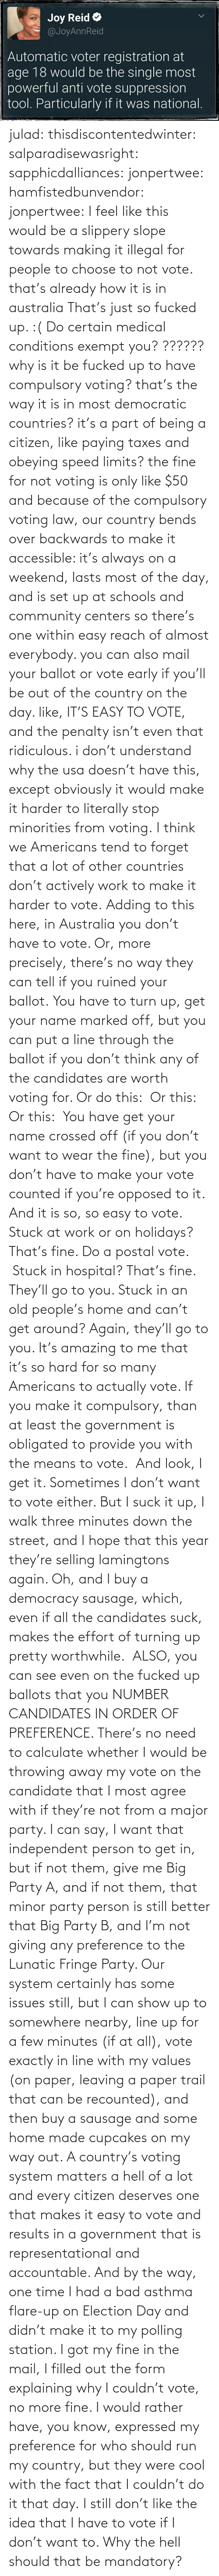 Bad, Community, and Old People: julad: thisdiscontentedwinter:  salparadisewasright:  sapphicdalliances:  jonpertwee:  hamfistedbunvendor:   jonpertwee: I feel like this would be a slippery slope towards making it illegal for people to choose to not vote. that's already how it is in australia   That's just so fucked up. :( Do certain medical conditions exempt you?  ?????? why is it be fucked up to have compulsory voting? that's the way it is in most democratic countries? it's a part of being a citizen, like paying taxes and obeying speed limits? the fine for not voting is only like $50 and because of the compulsory voting law, our country bends over backwards to make it accessible: it's always on a weekend, lasts most of the day, and is set up at schools and community centers so there's one within easy reach of almost everybody. you can also mail your ballot or vote early if you'll be out of the country on the day. like, IT'S EASY TO VOTE, and the penalty isn't even that ridiculous. i don't understand why the usa doesn't have this, except obviously it would make it harder to literally stop minorities from voting.  I think we Americans tend to forget that a lot of other countries don't actively work to make it harder to vote.  Adding to this here, in Australia you don't have to vote. Or, more precisely, there's no way they can tell if you ruined your ballot.You have to turn up, get your name marked off, but you can put a line through the ballot if you don't think any of the candidates are worth voting for. Or do this: Or this:  Or this: You have get your name crossed off (if you don't want to wear the fine), but you don't have to make your vote counted if you're opposed to it. And it is so, so easy to vote. Stuck at work or on holidays? That's fine. Do a postal vote. Stuck in hospital? That's fine. They'll go to you. Stuck in an old people's home and can't get around? Again, they'll go to you. It's amazing to me that it's so hard for so many Americans to actually vot